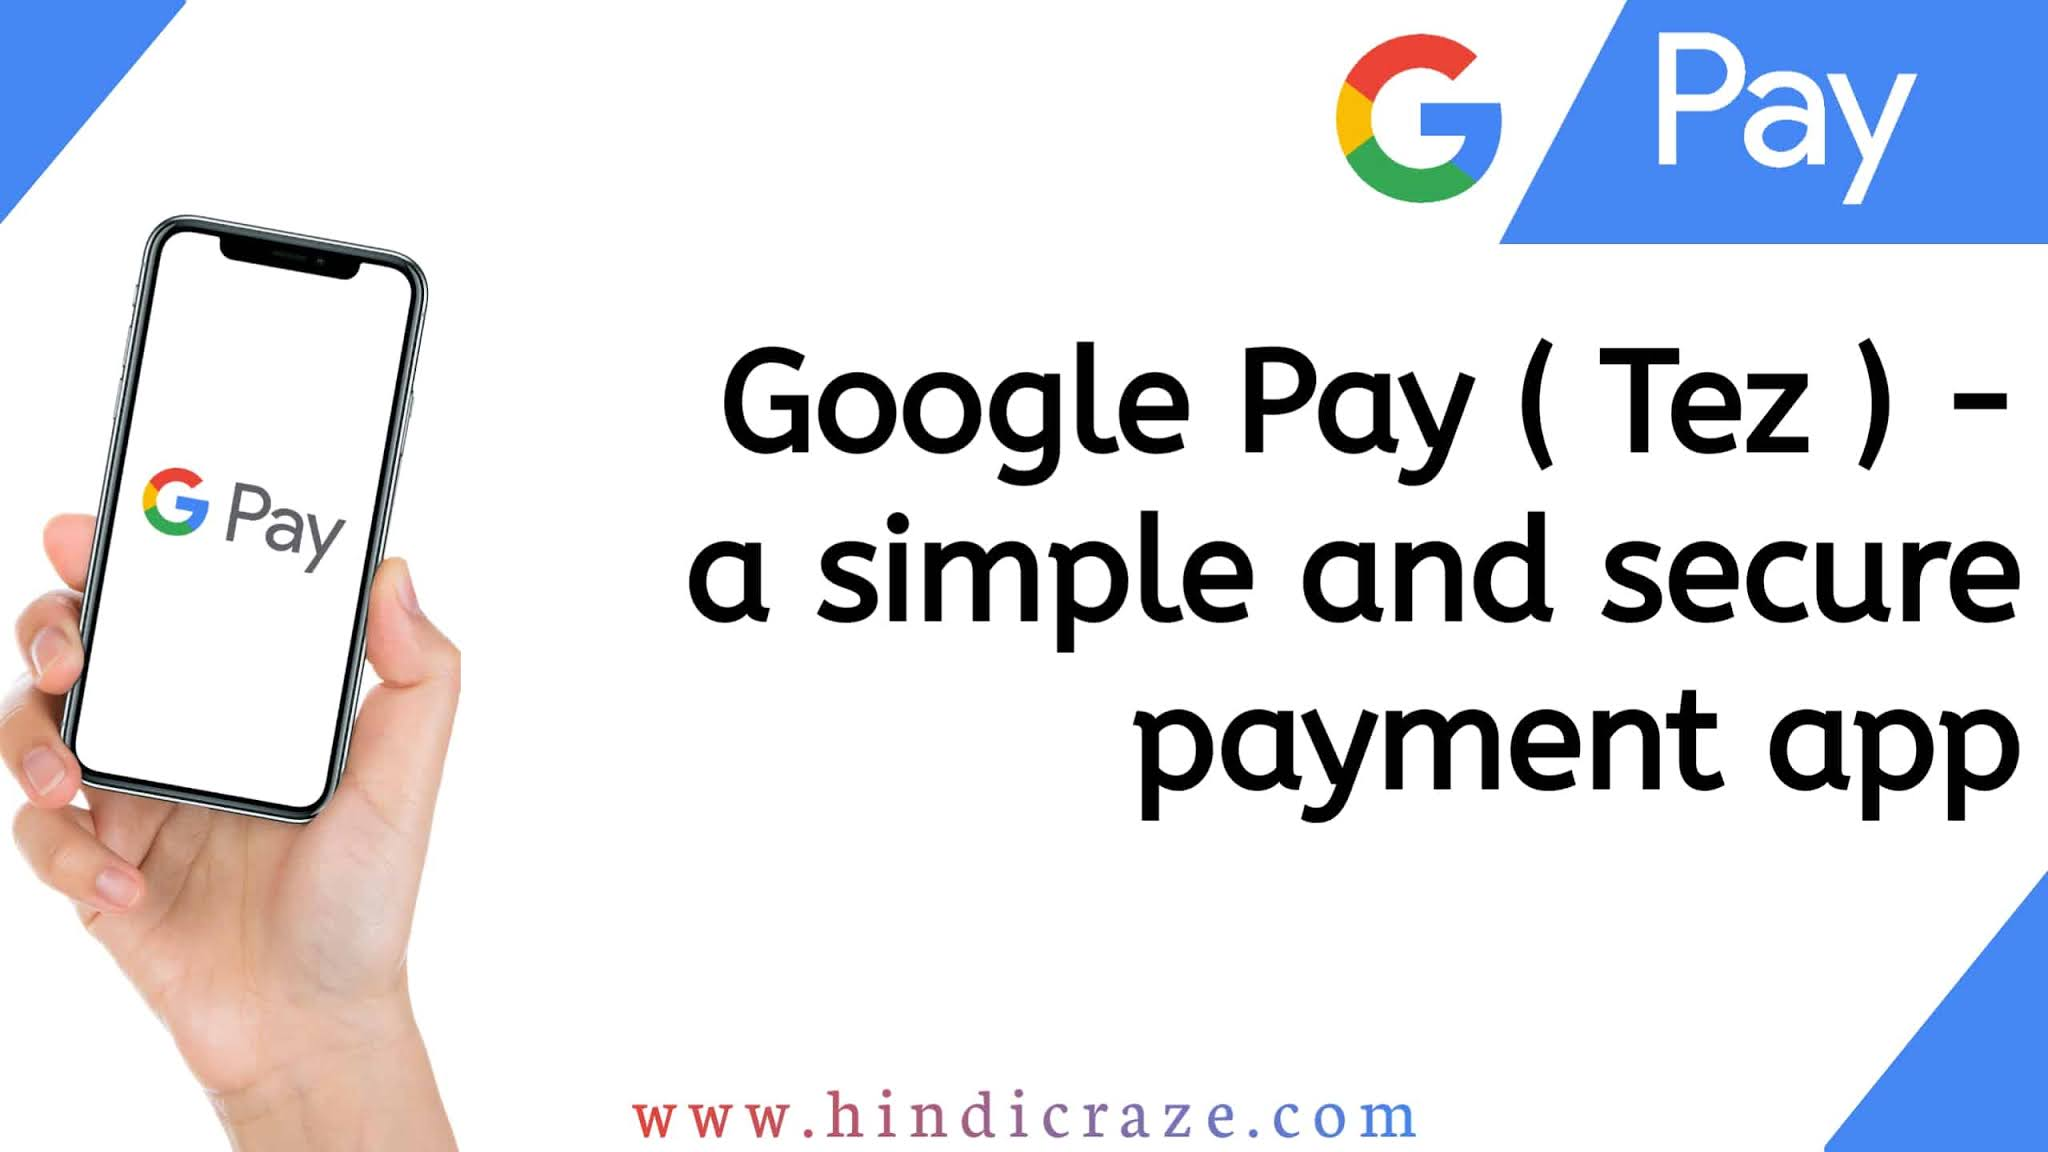 Best UPI Payments App In India 2020 - Google Pay